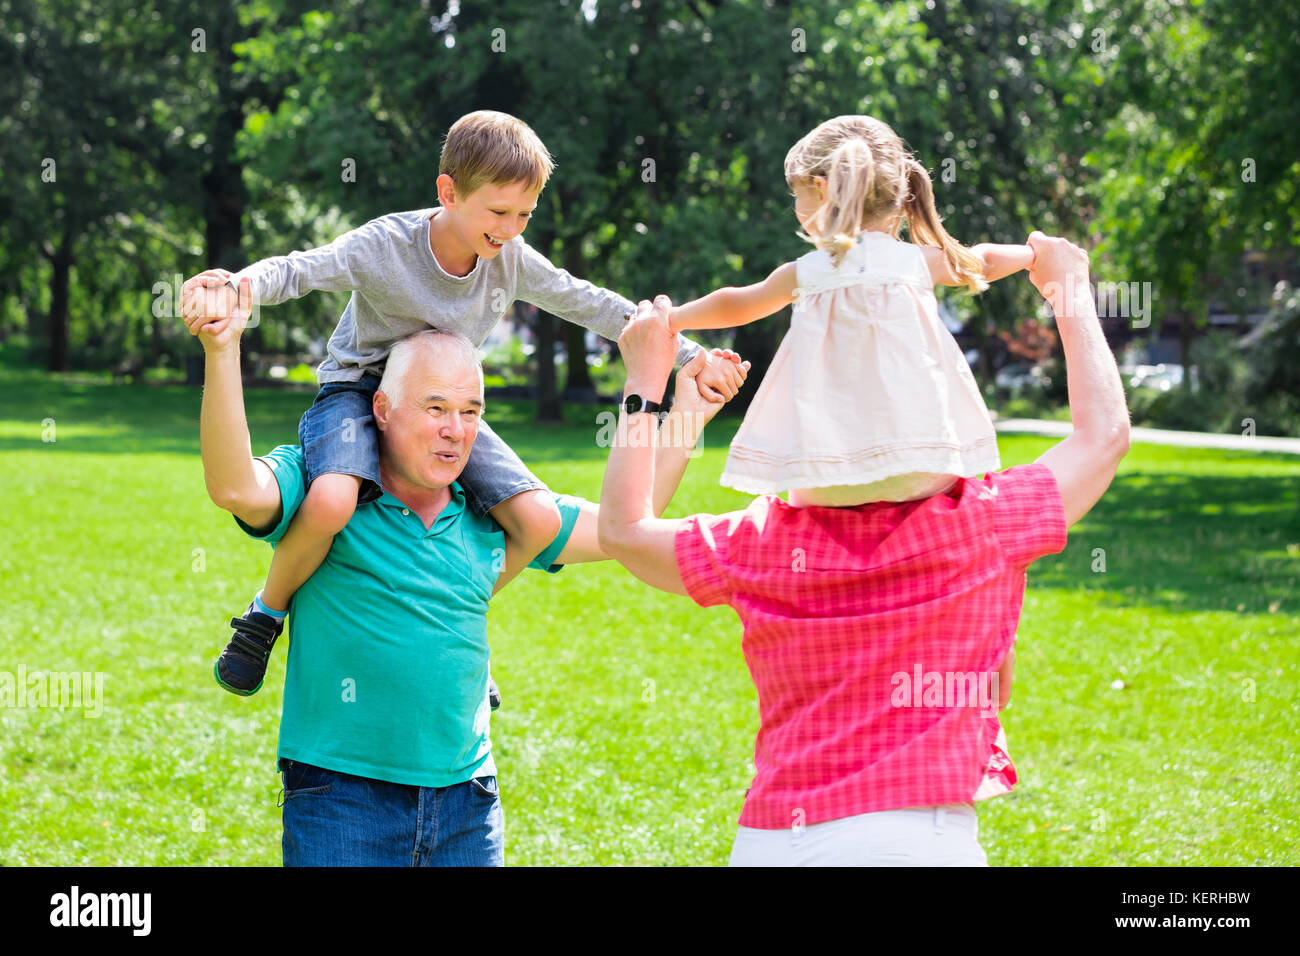 Happy Old Grandparents Enjoy Fun Piggyback Ride With Grandchildren Together In Park - Stock Image